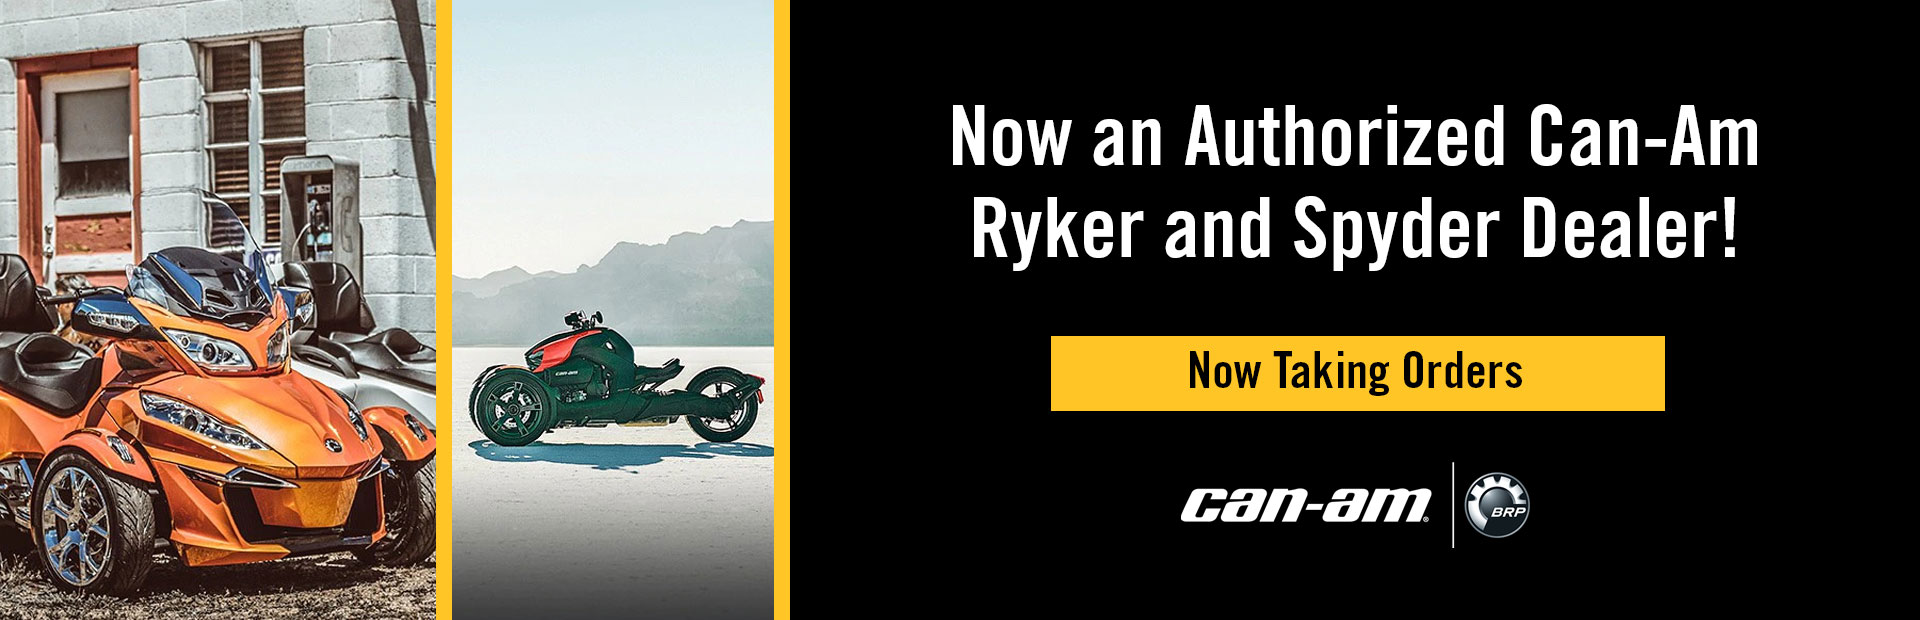 Authorized Can-Am Ryker and Spyder dealer! Click here to check out the latest selection!